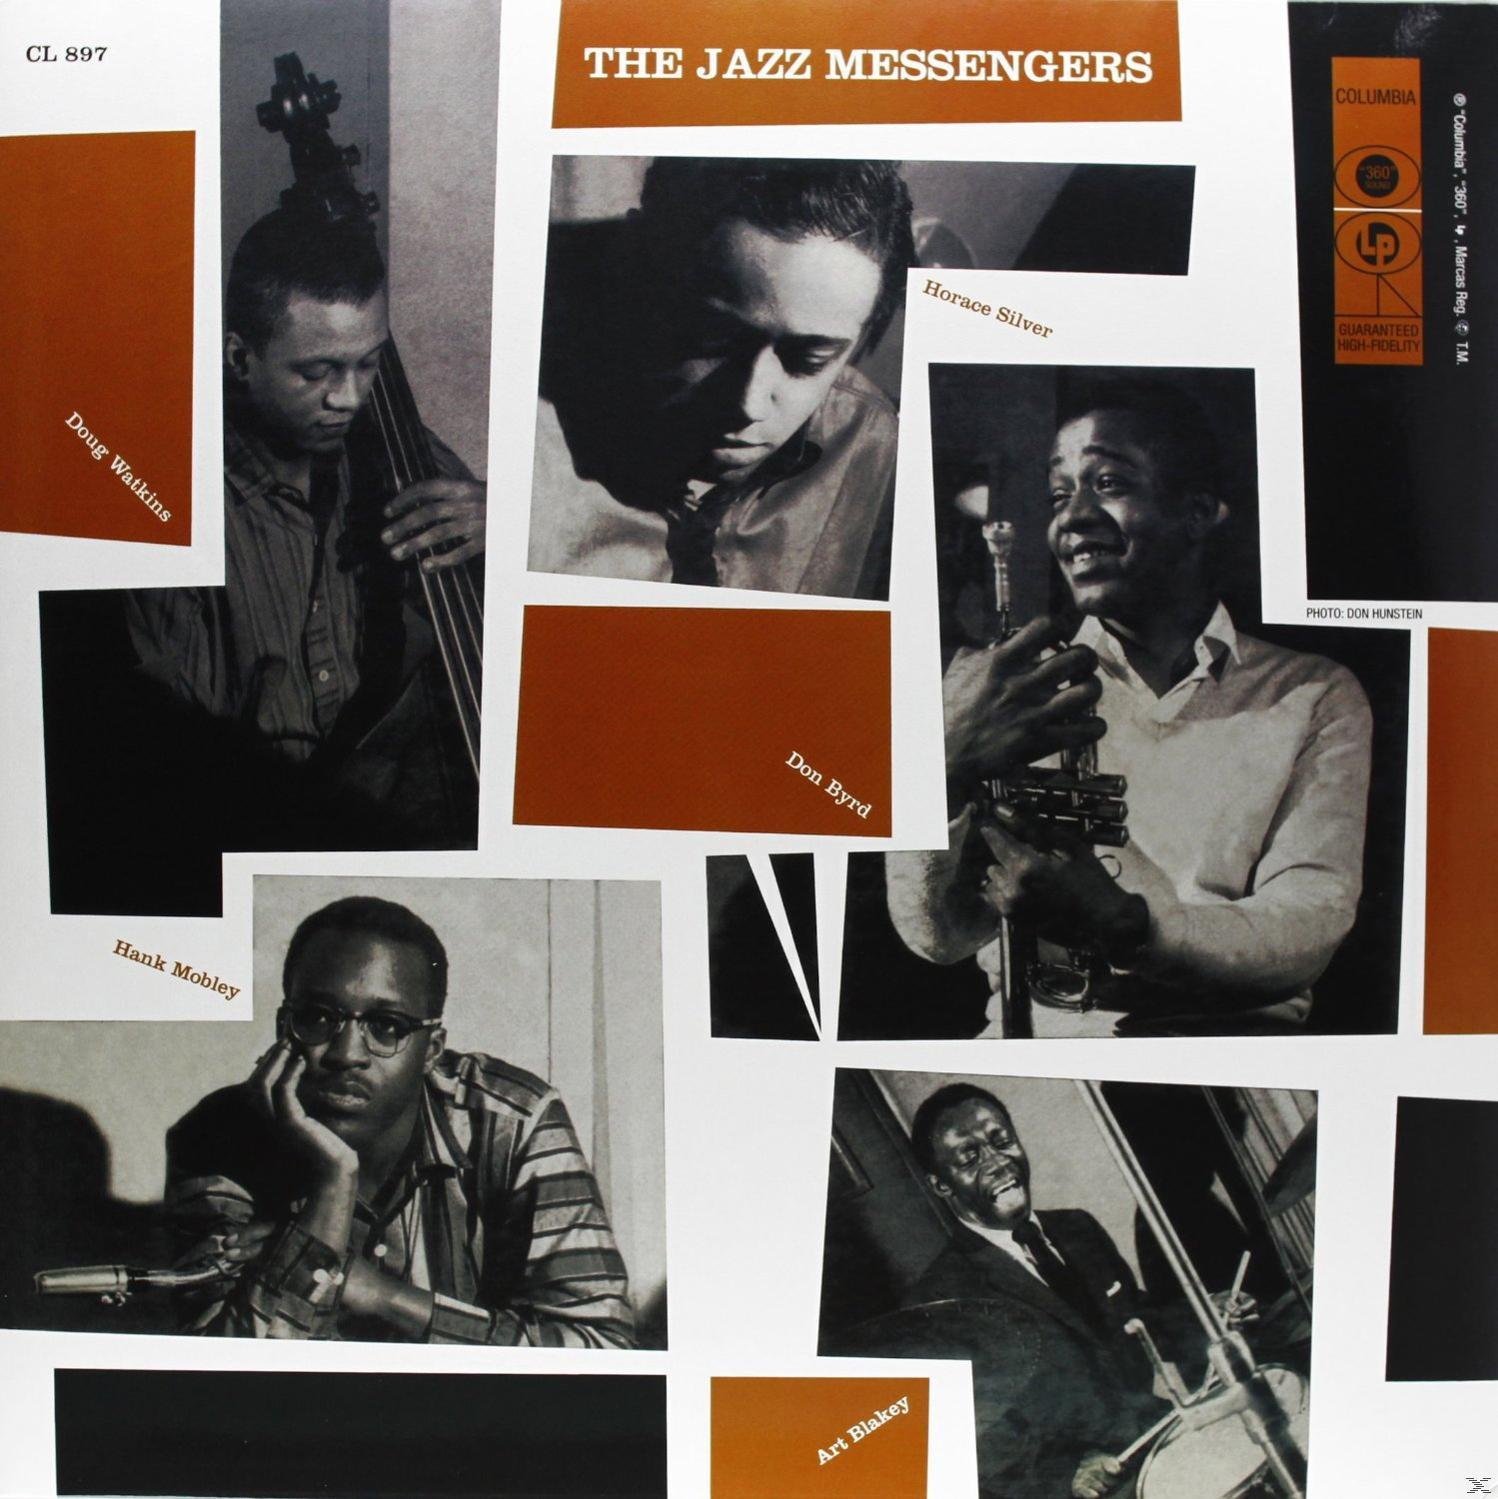 public - the jazz messengers